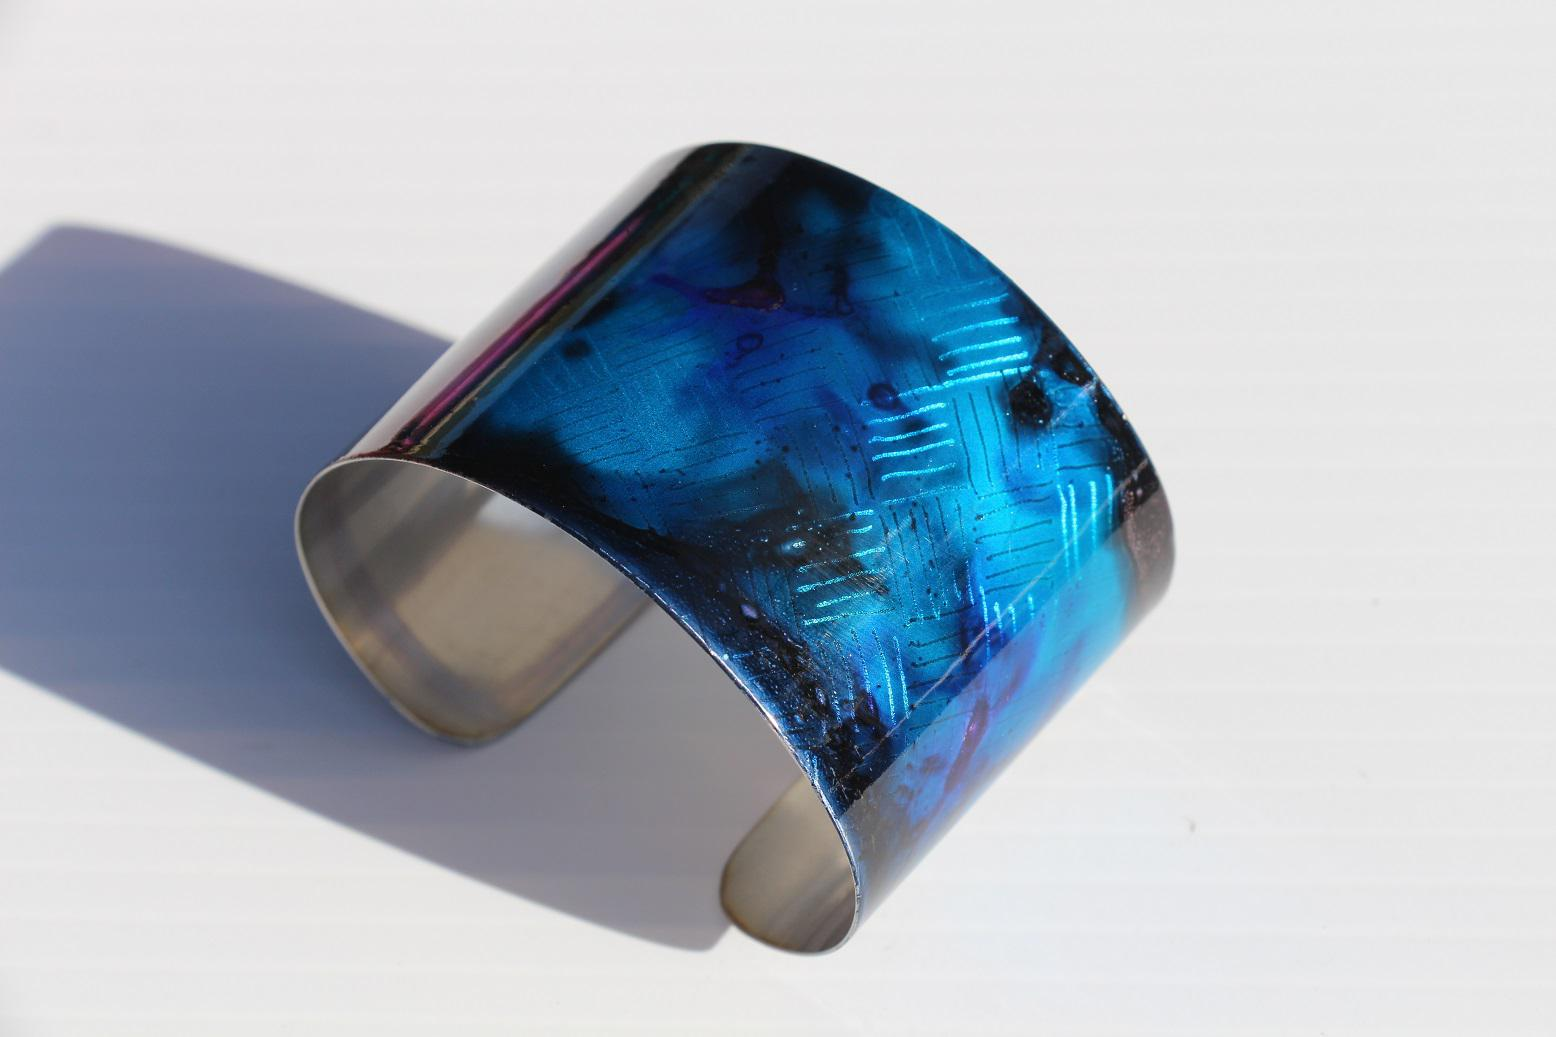 Galaxia Metal holographic cuff bracelet